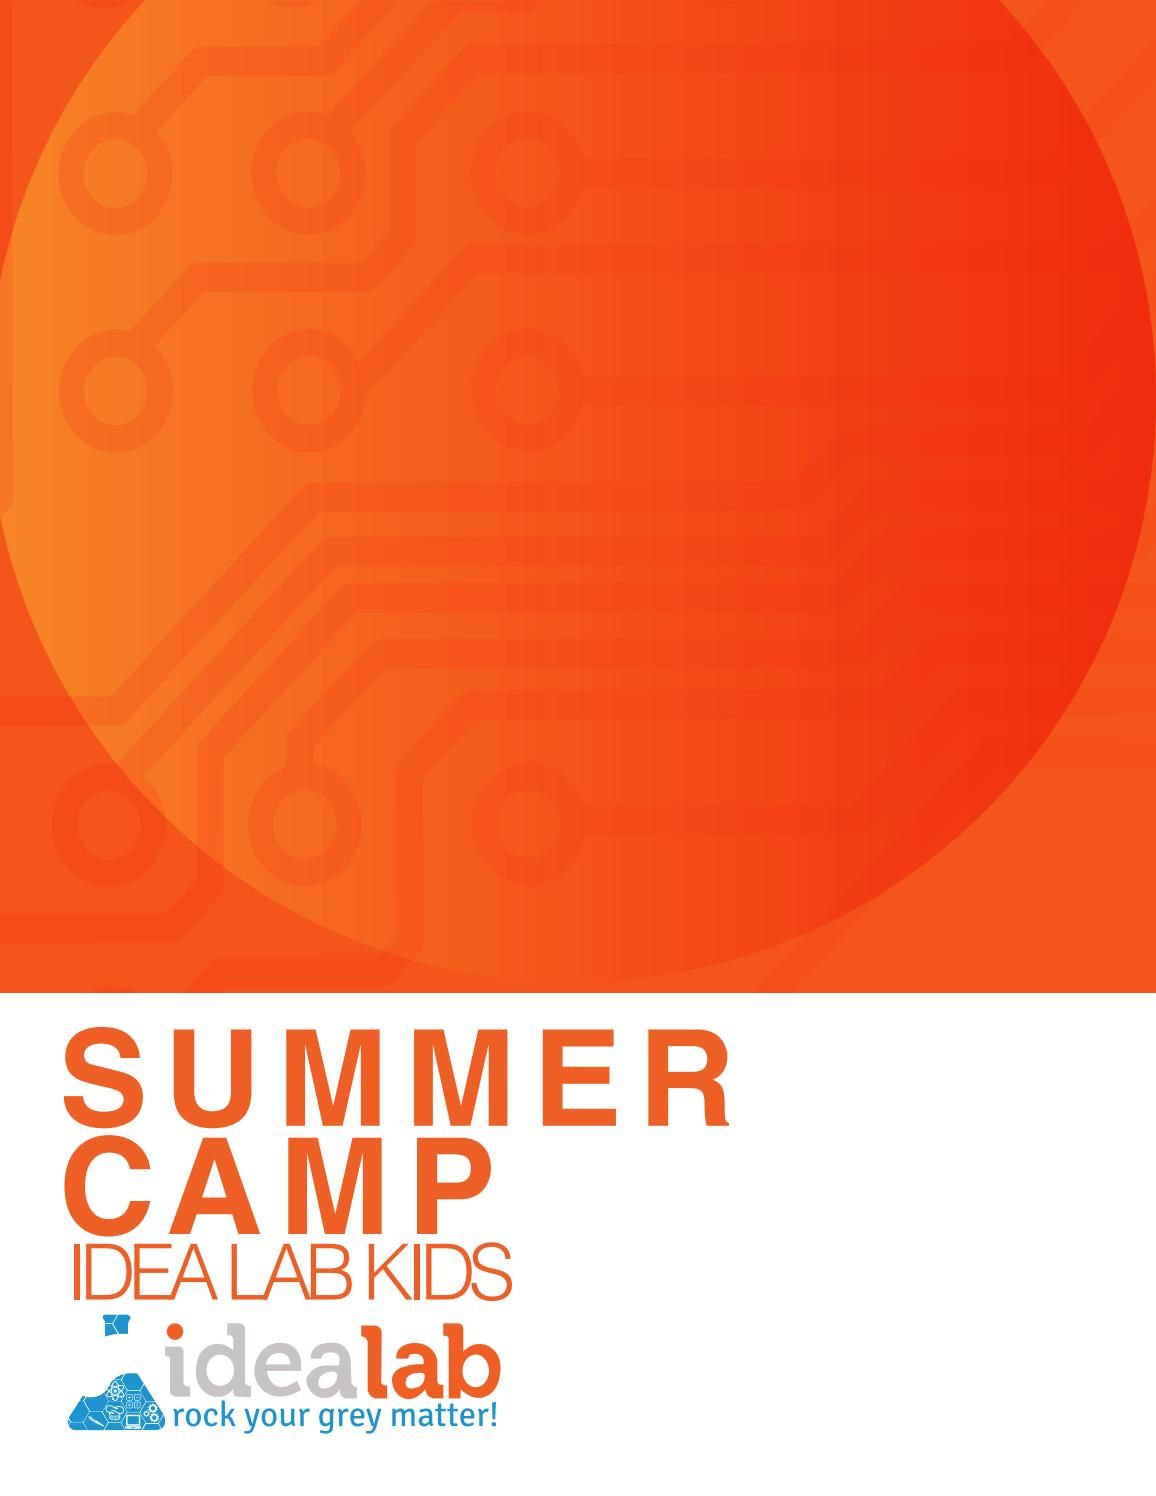 2018 Idea Lab Kids Summer Camp Information Brochure